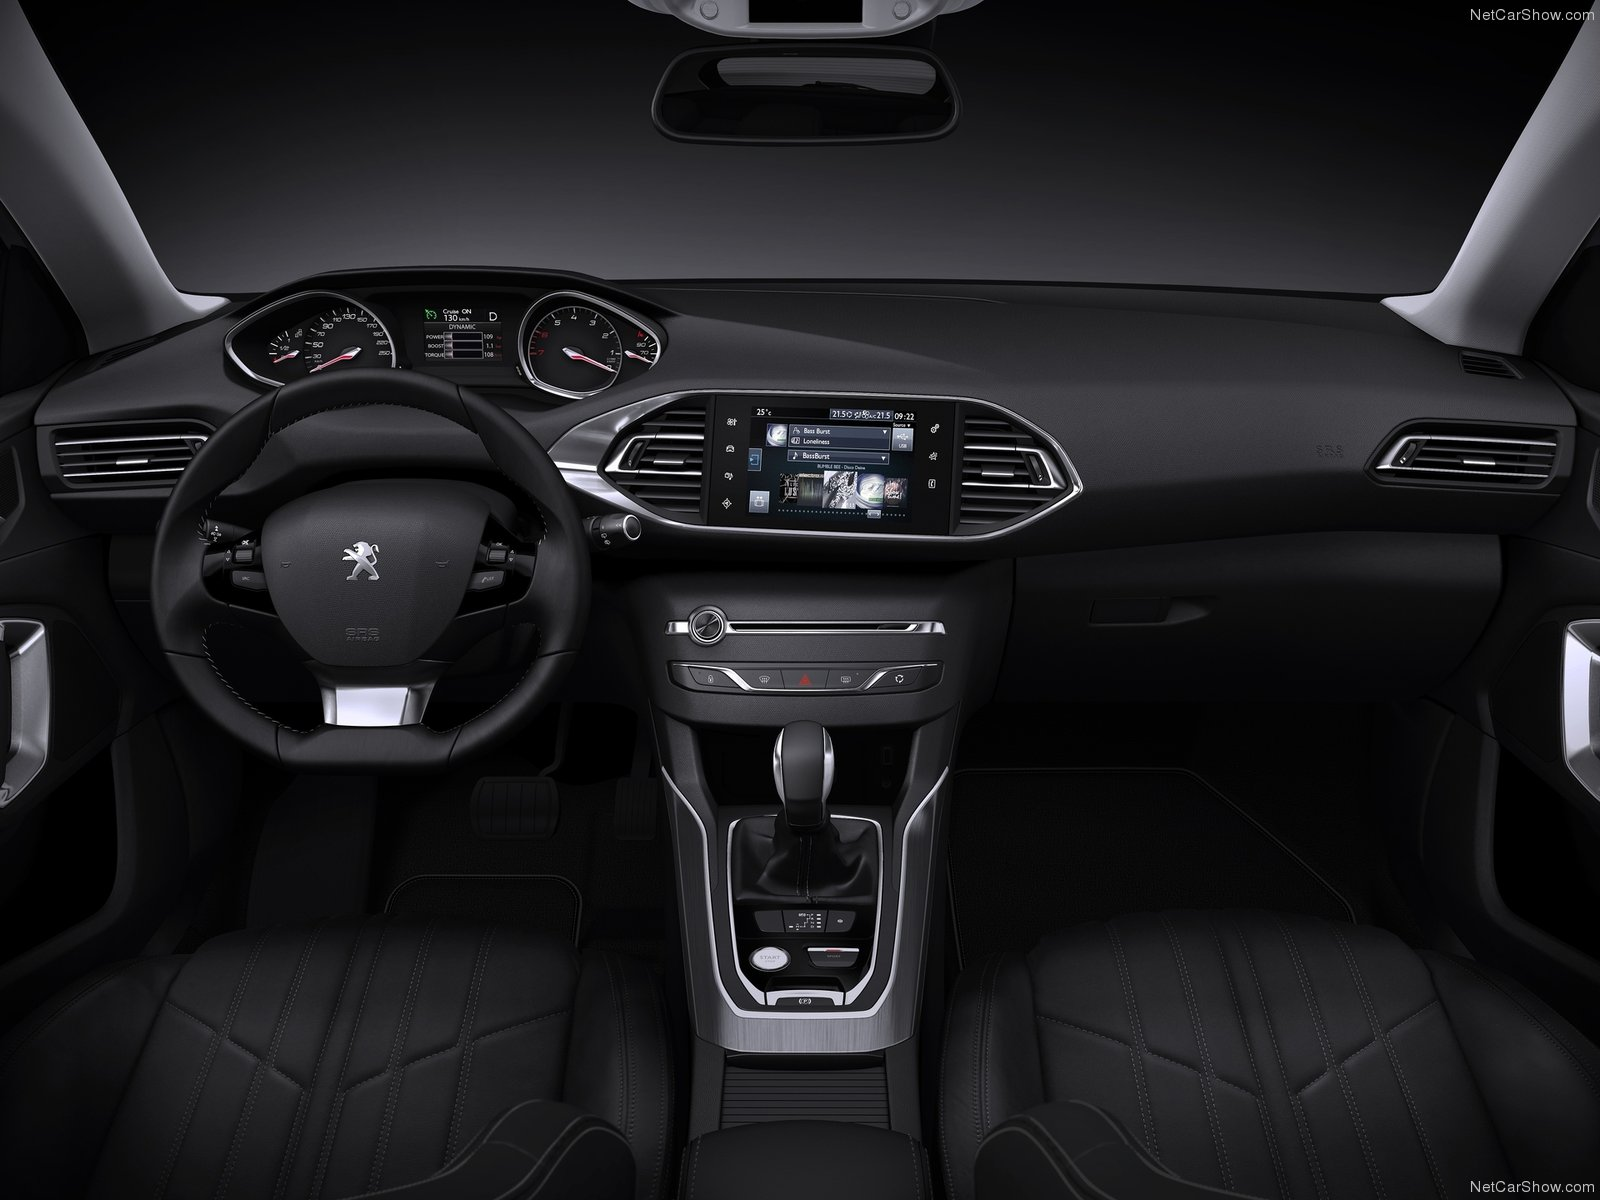 adorable-design-of-the-black-dash-ideas-with-black-steering-wheels-as-the-peugeot-308-2014-interior-ideas